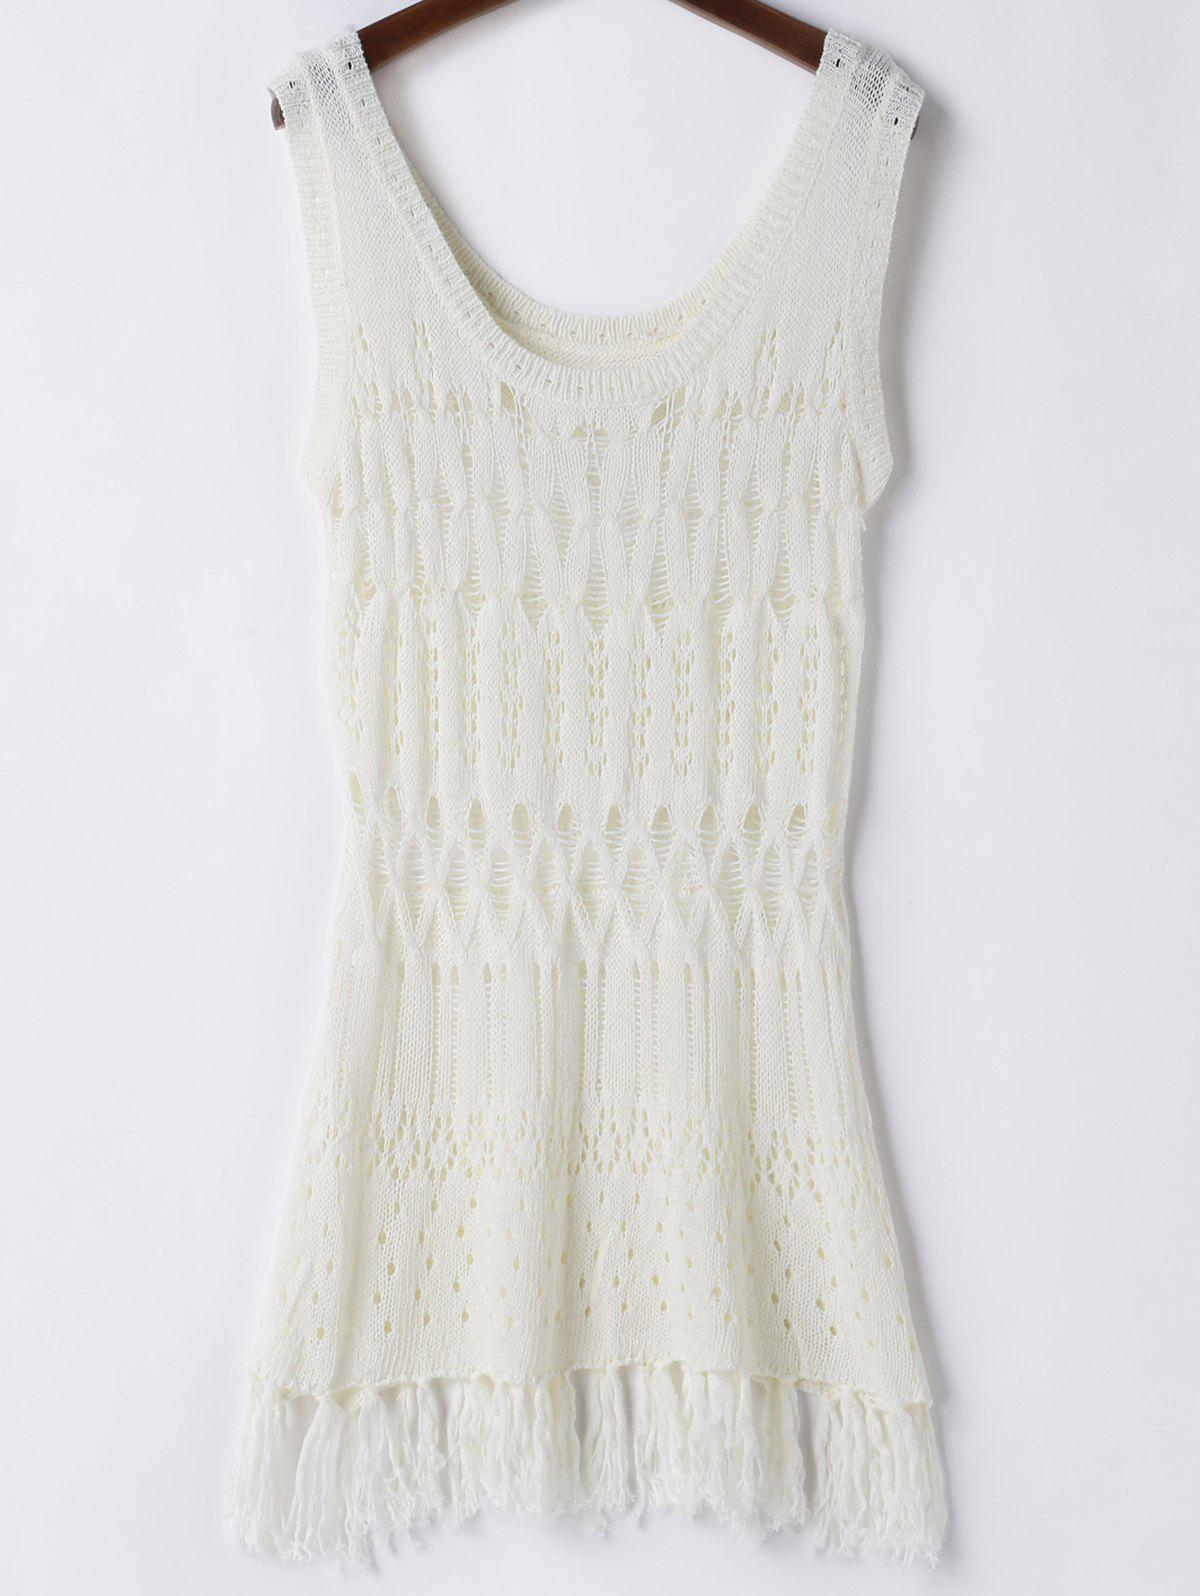 Trendy Solid Color Hollow Out Crochet Womens Cover UpWomen<br><br><br>Size: ONE SIZE(FIT SIZE XS TO M)<br>Color: WHITE